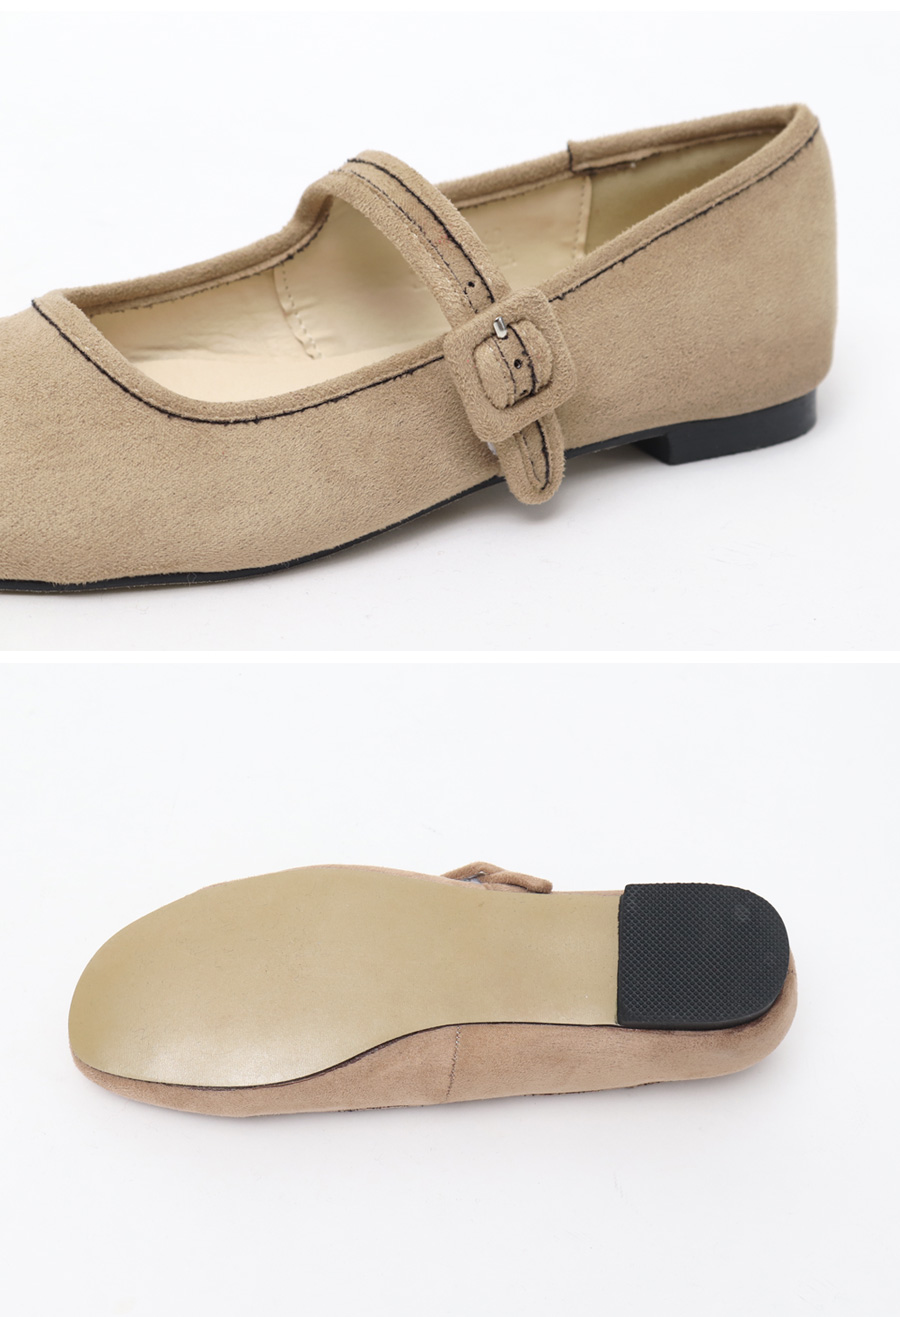 Soft suede mary-jane shoes_H (size : 225,230,235,240,245,250)